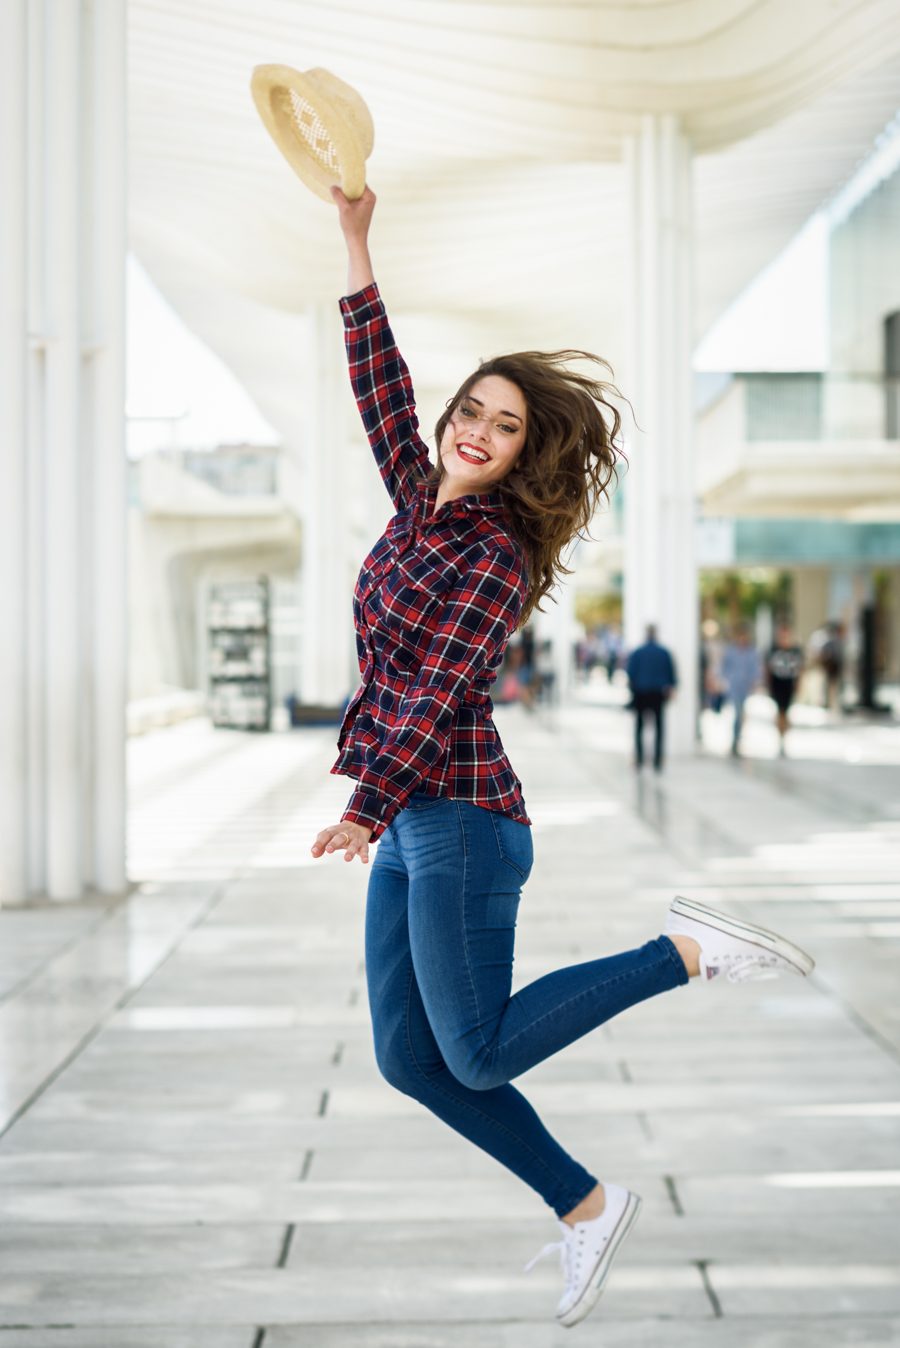 Young woman with beautiful blue eyes wearing plaid shirt and sun hat. Girl jumping in urban background.